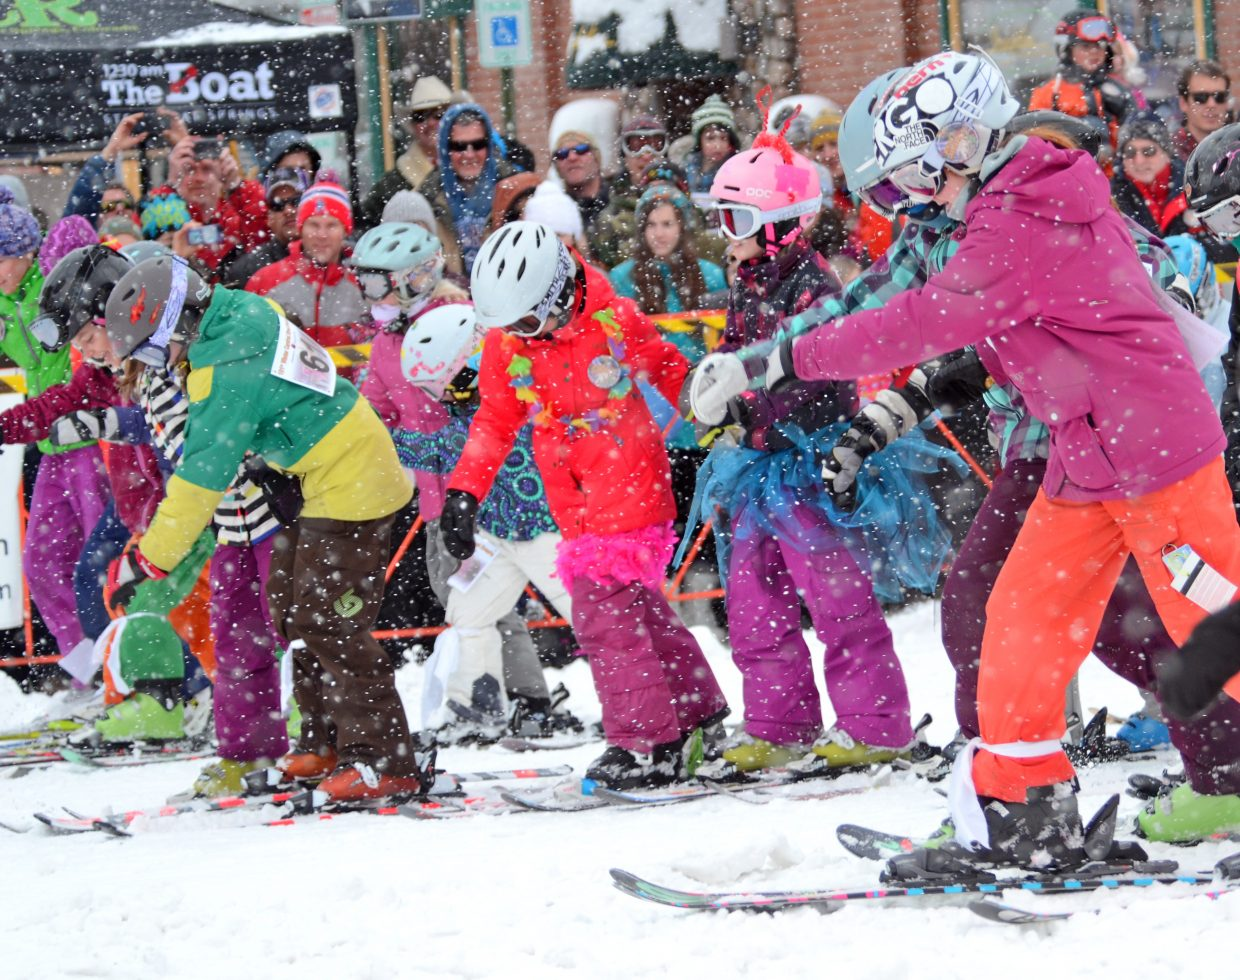 Three-legged race on skis in downtown Steamboat Springs. Submitted by Steve Baroch.